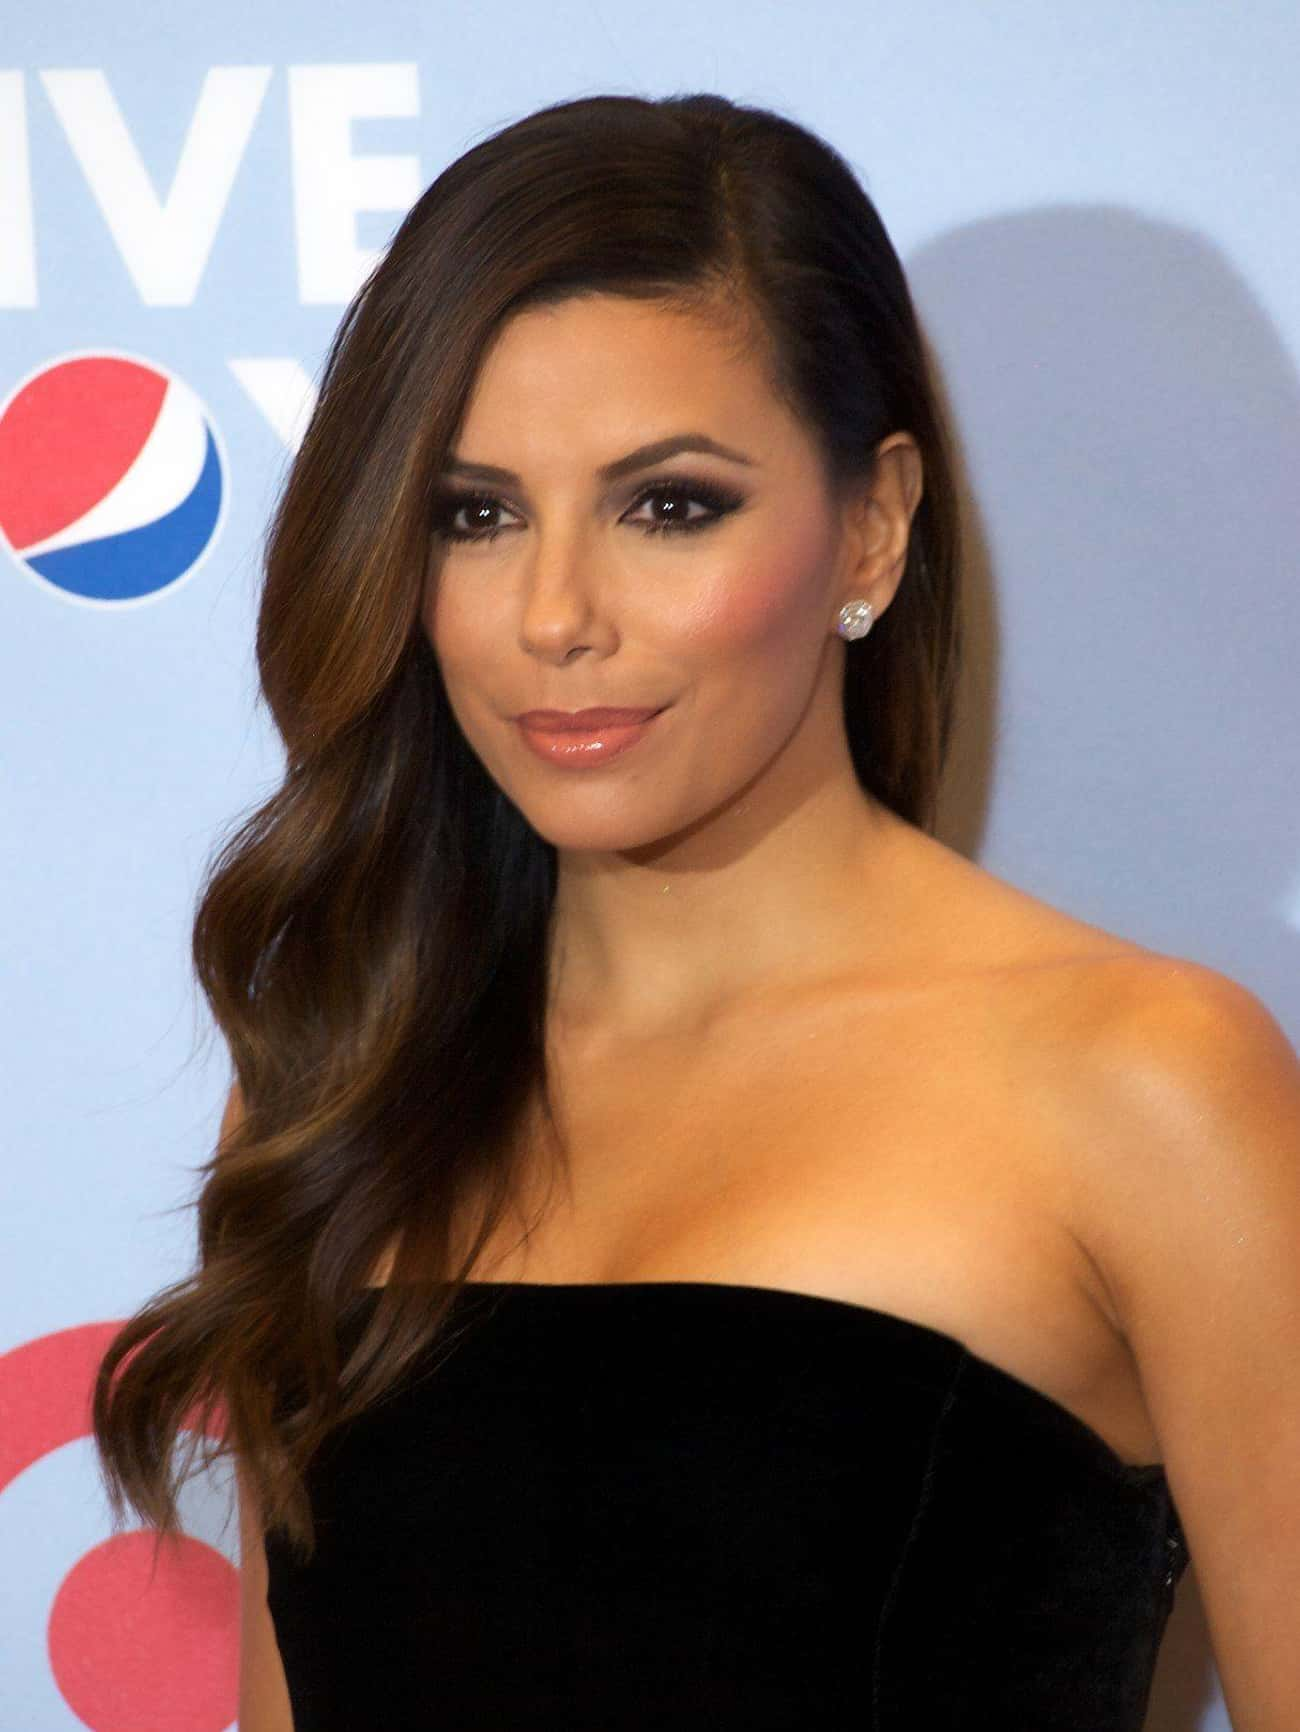 Eva Longoria is listed (or ranked) 4 on the list 20+ Celebrities Who Love To Cook